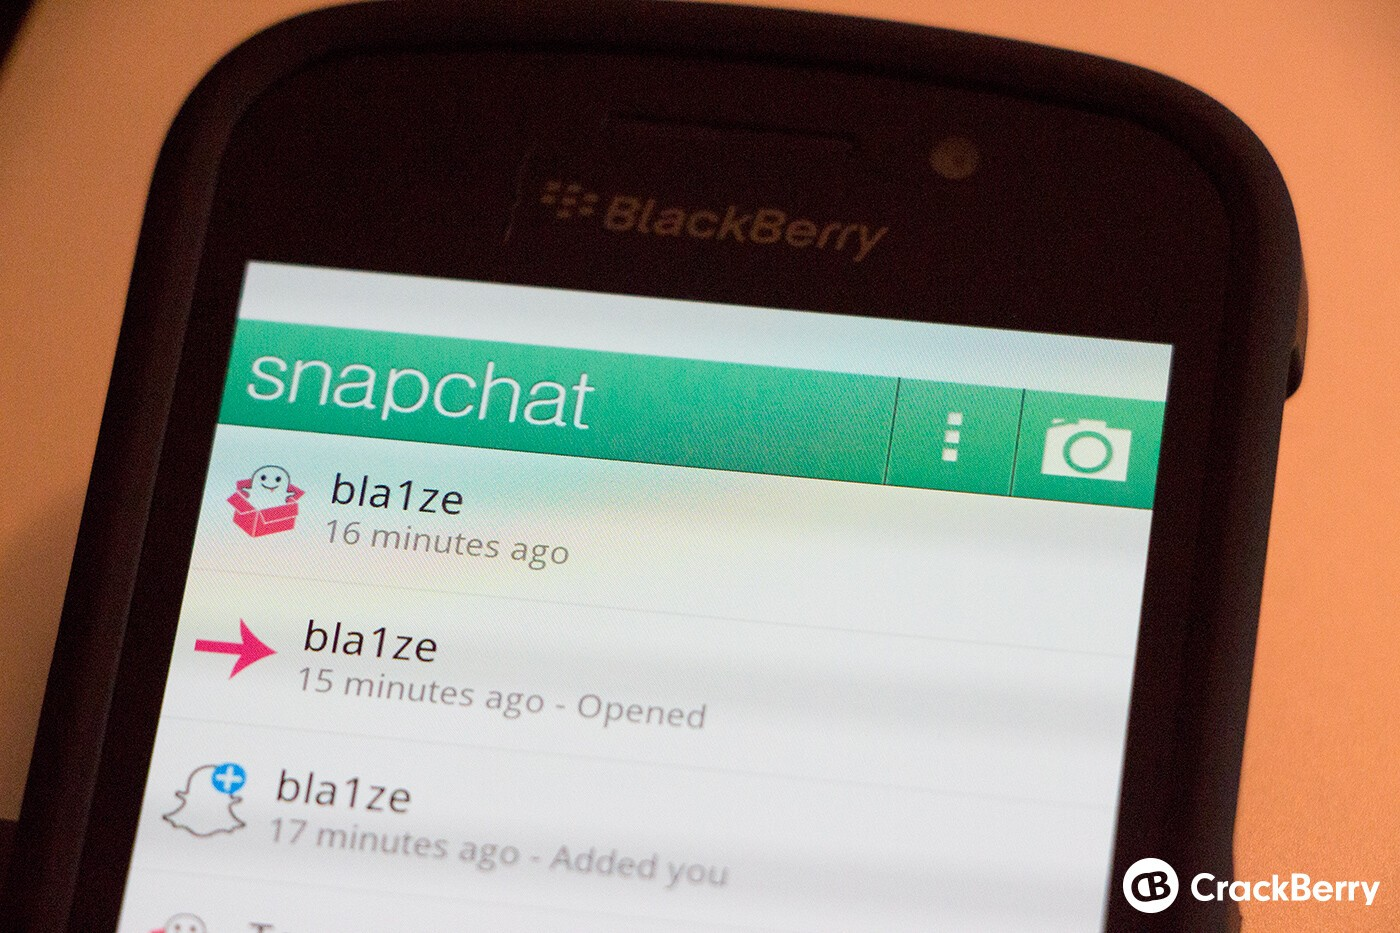 How to get Snapchat on your BlackBerry | CrackBerry